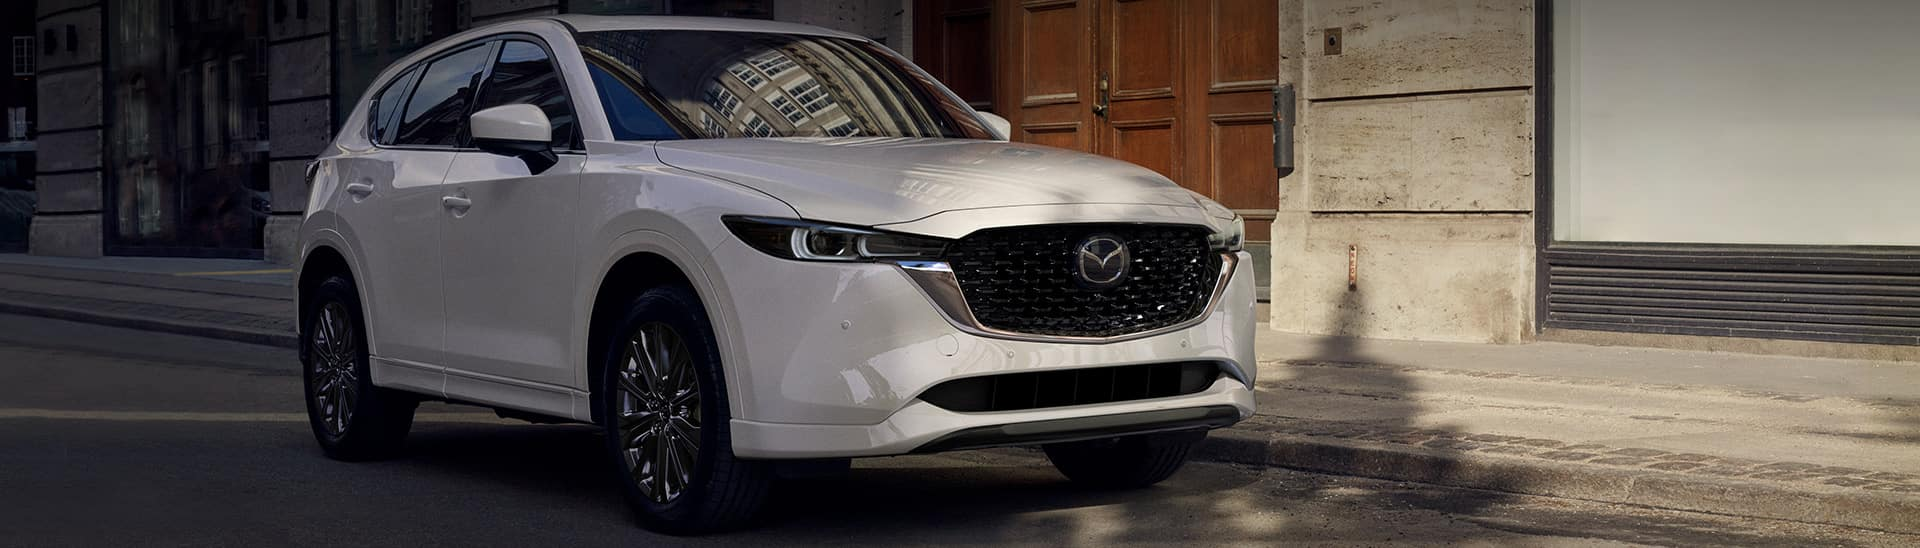 2022 Mazda CX-5 in white on a street